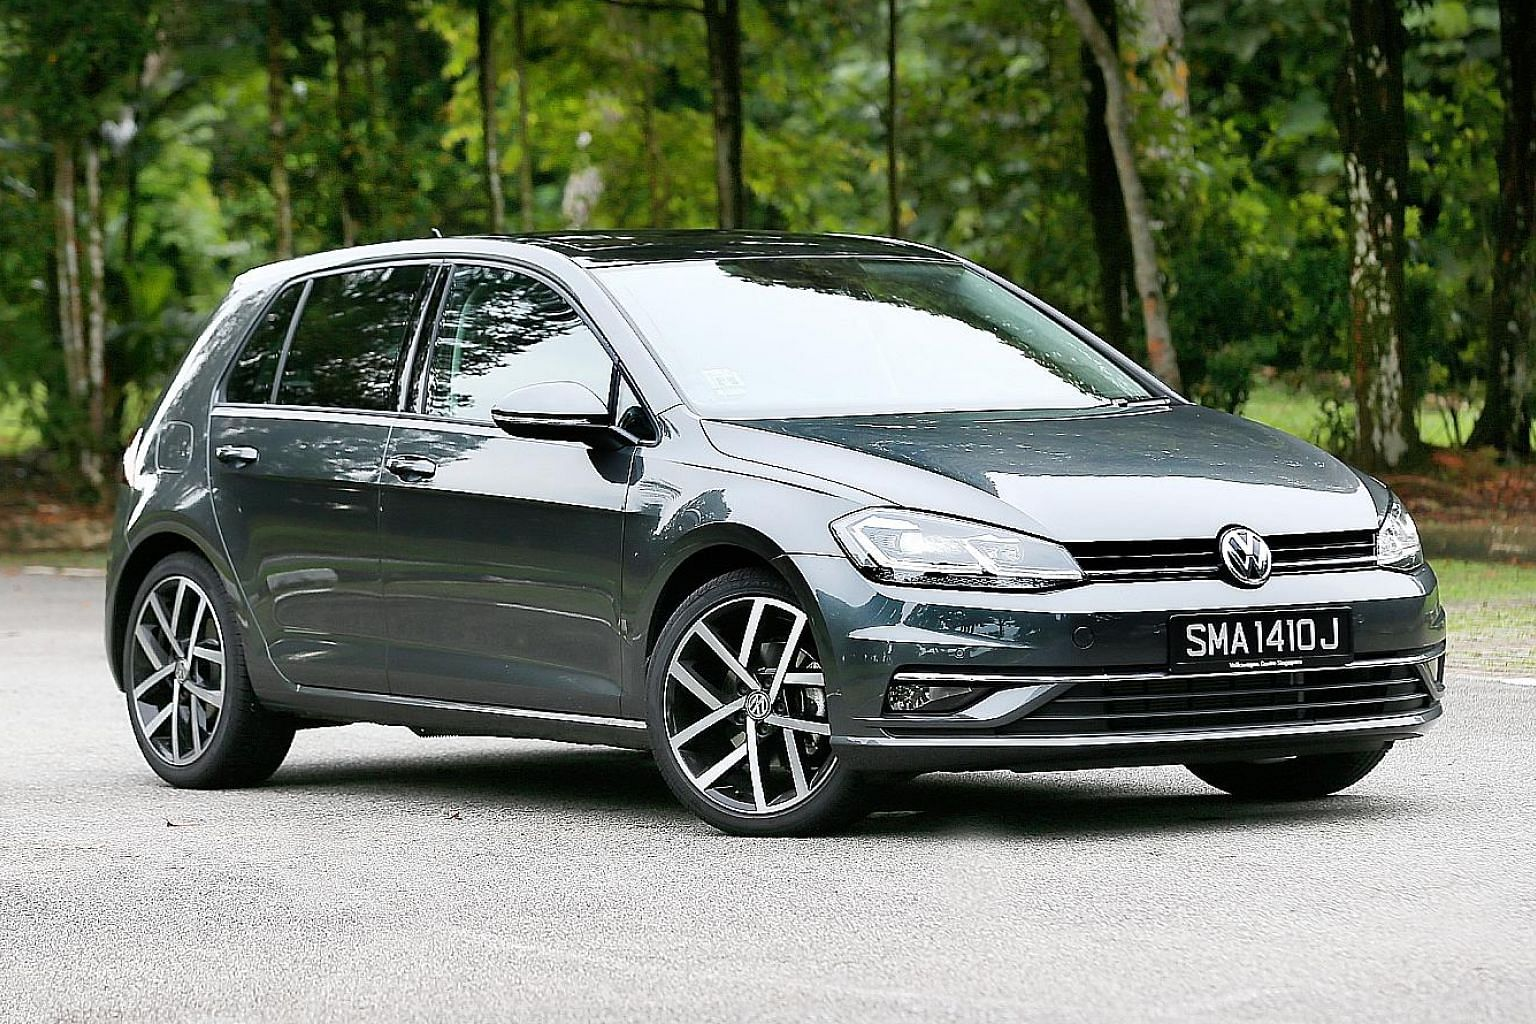 The Golf 1.4 feels lively and its Highline variant has a 9.2-inch touchscreen infotainment system and a multi-function leather-lined steering wheel.